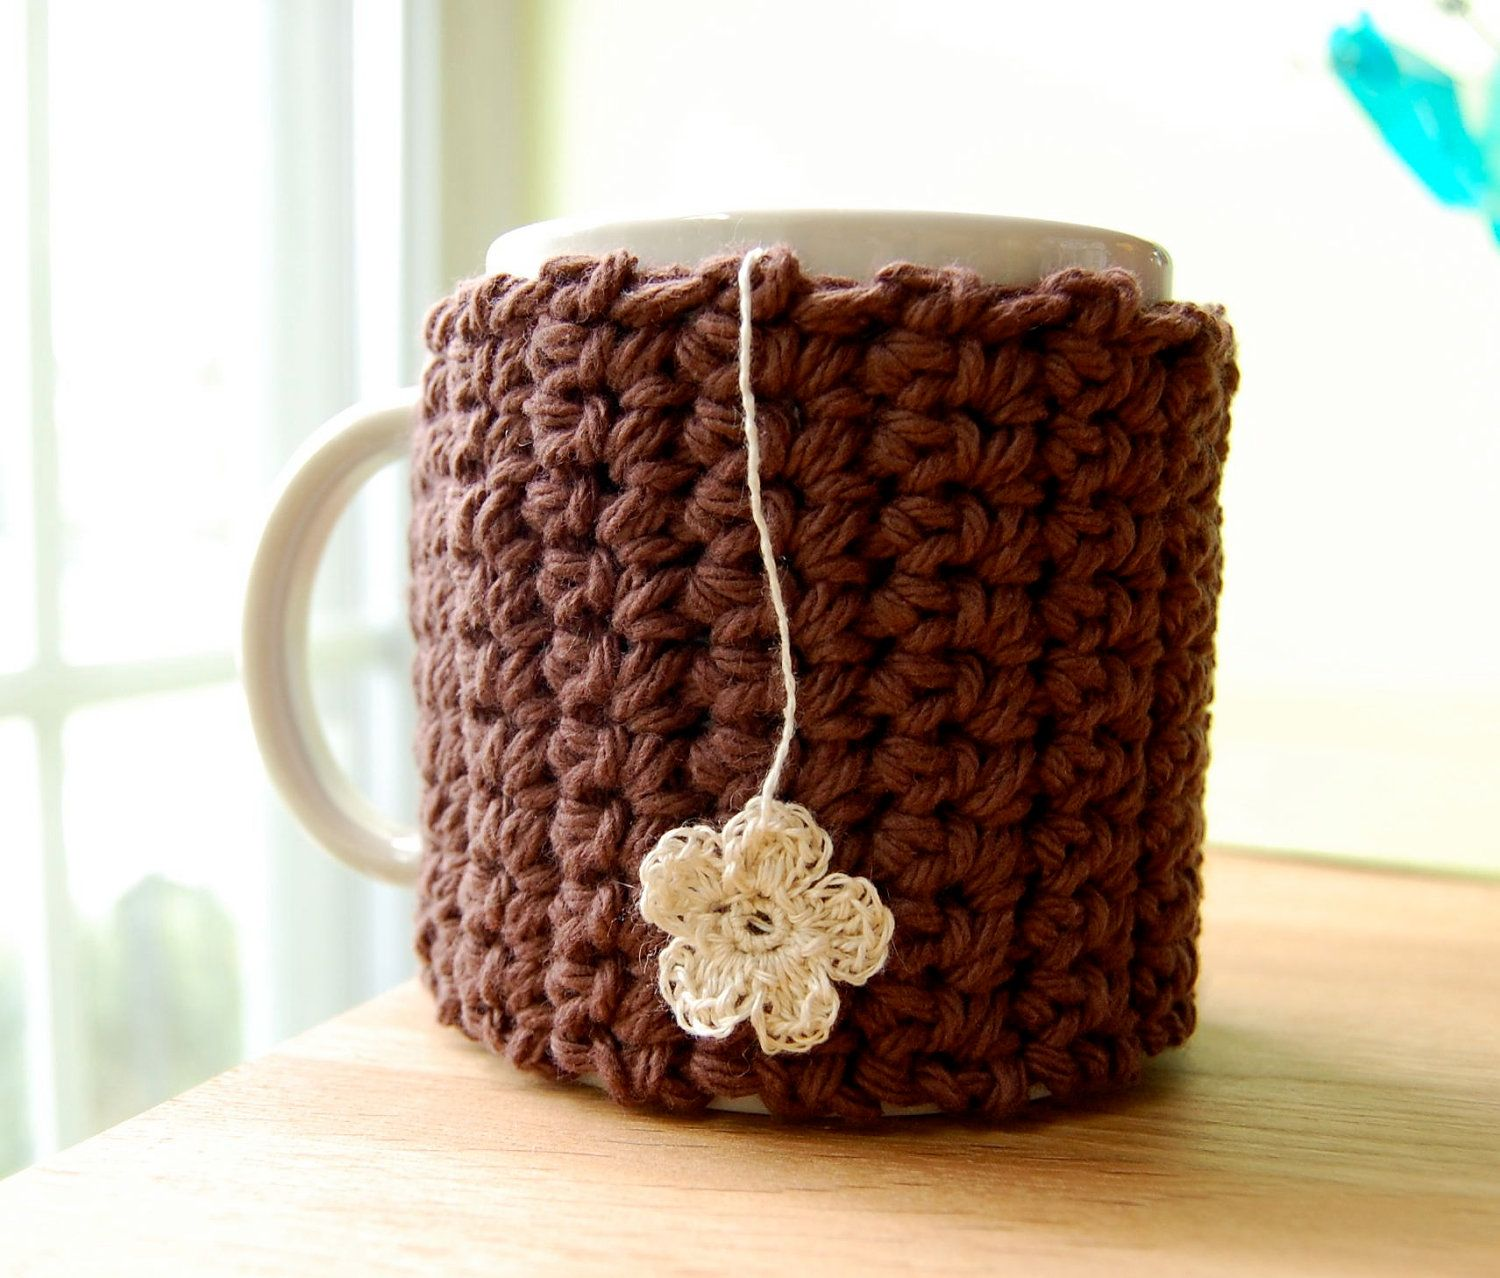 Flower Tea Mug Cozy Brown Crocheted Cup Cosy. $15.00, via Etsy.